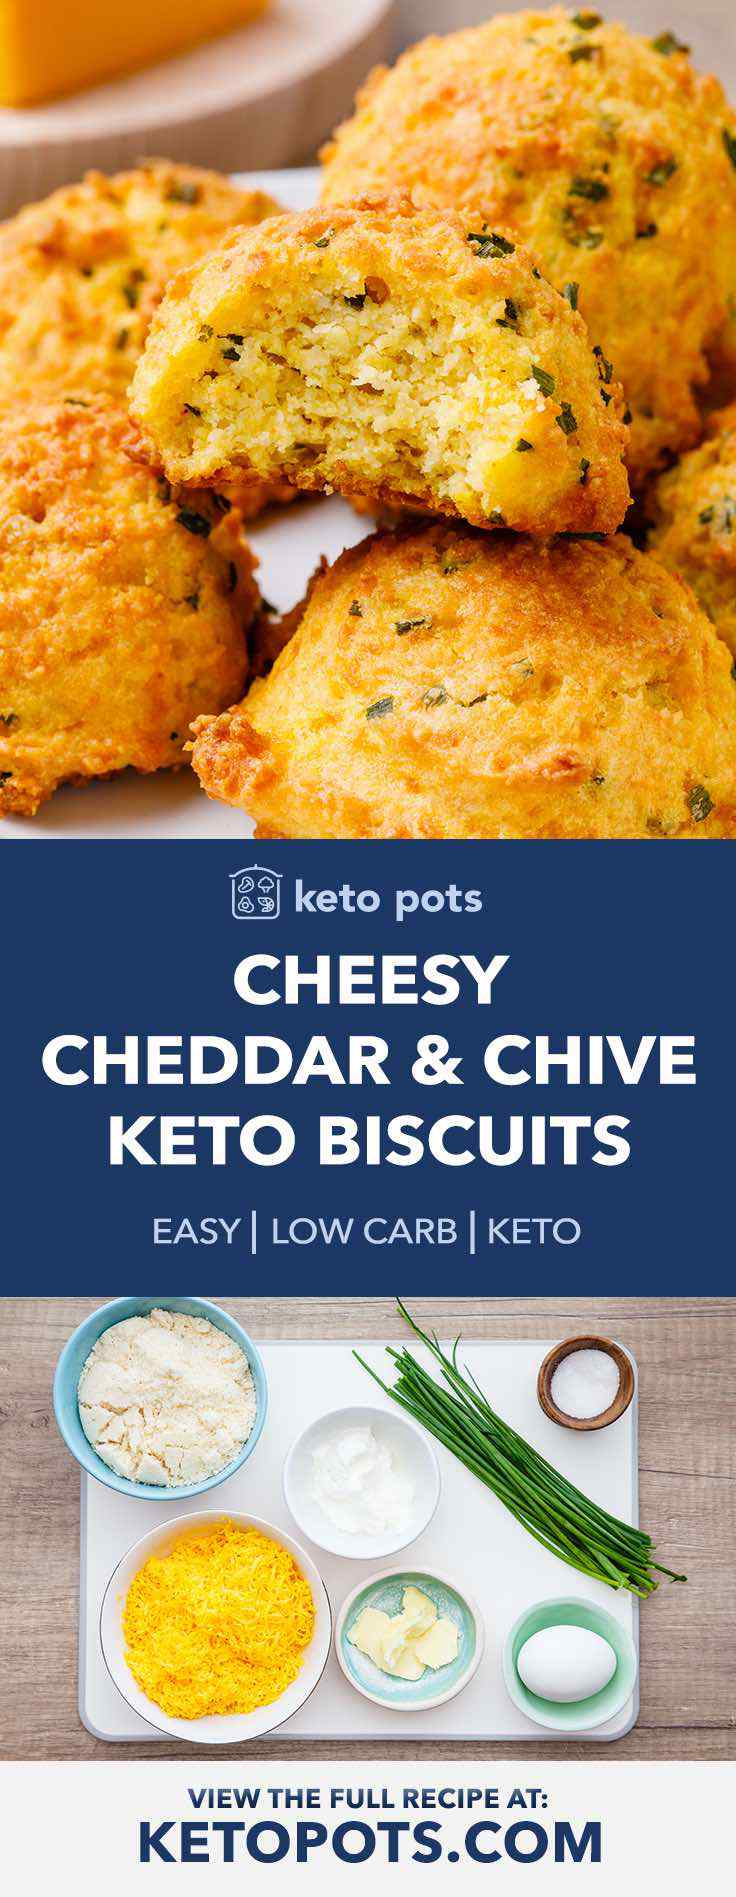 This cheddar and chive keto biscuits are the best biscuits I have ever had.